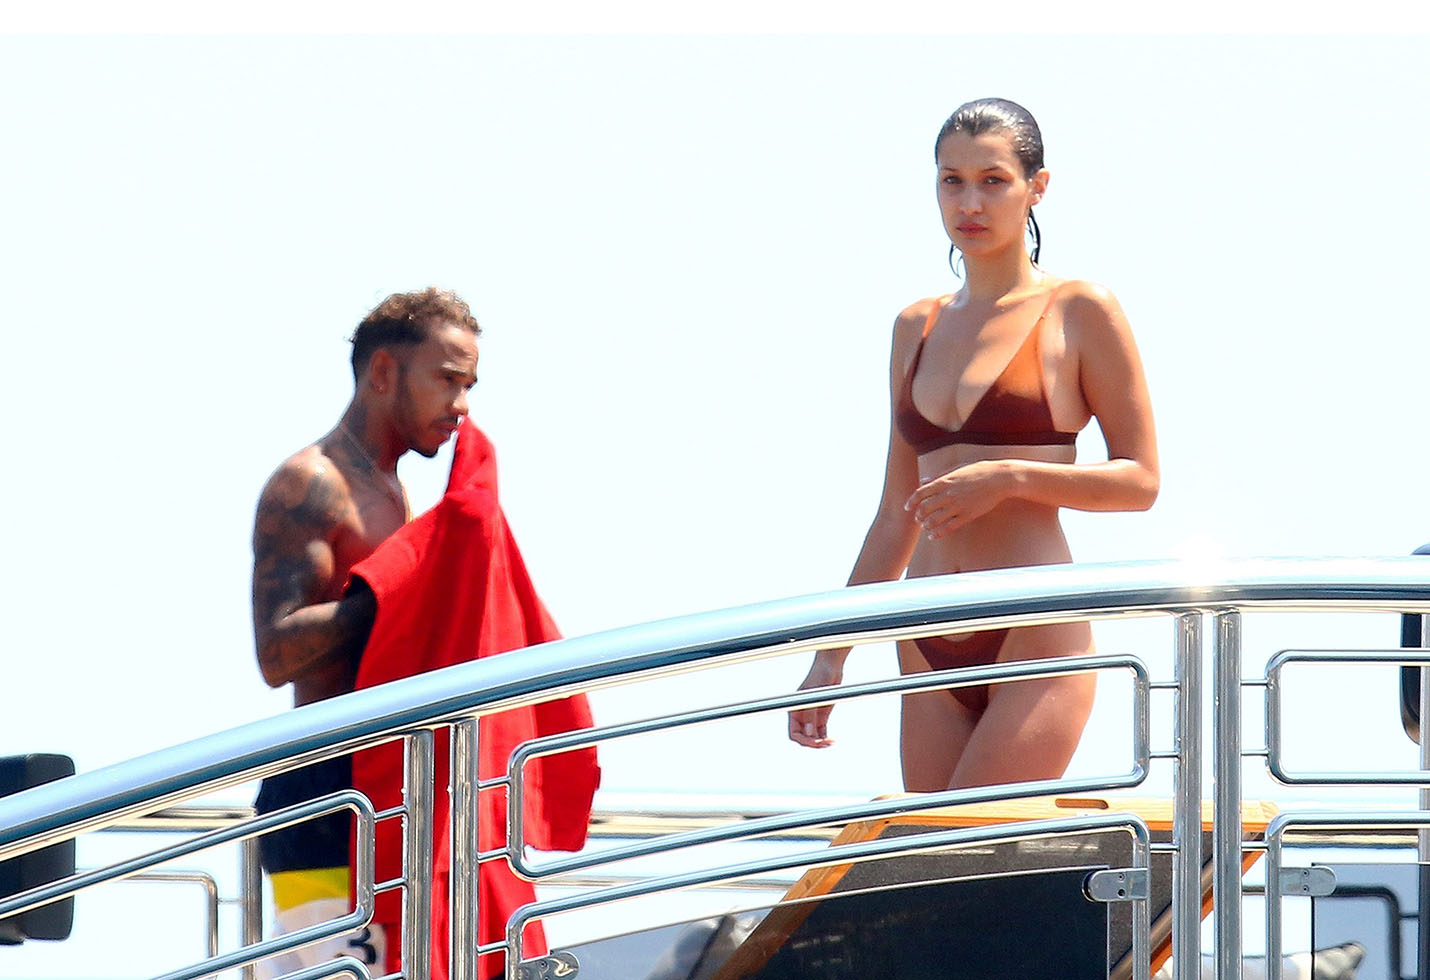 *EXCLUSIVE* Bella Hadid picks out her best thong bikini for yacht jumping with Lewis Hamilton